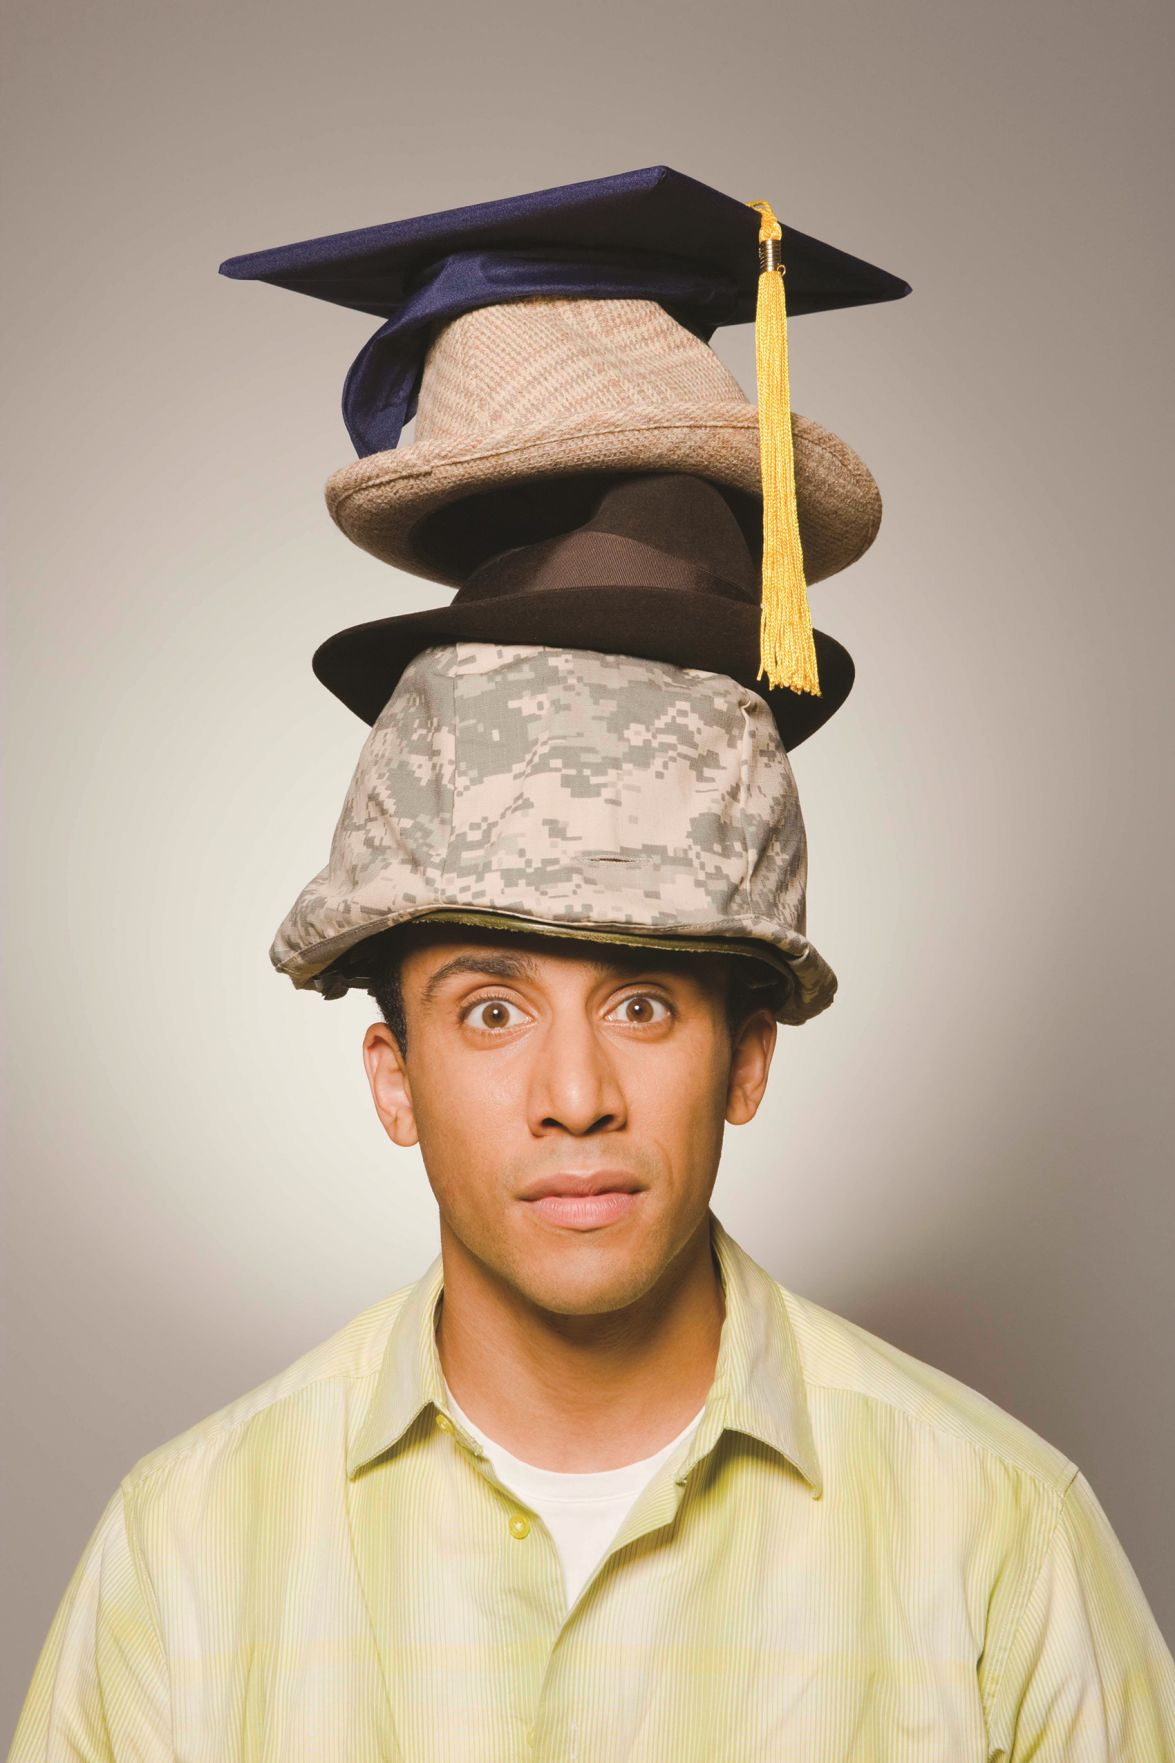 How many hats do you have